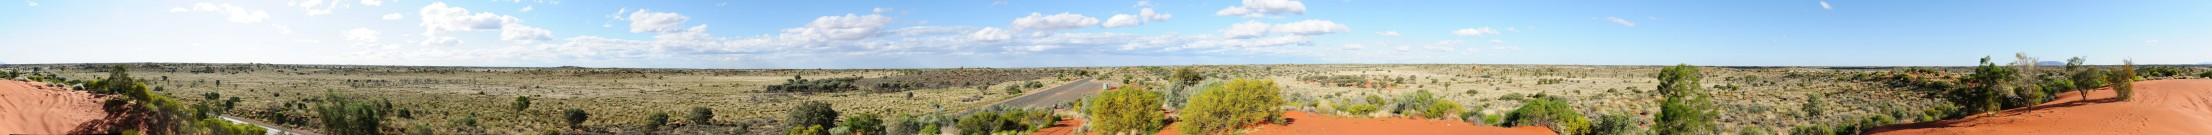 16 Aug 2011 Lesseter Highway, 30km east of Yulara - By: Hideya (vfr800hu)